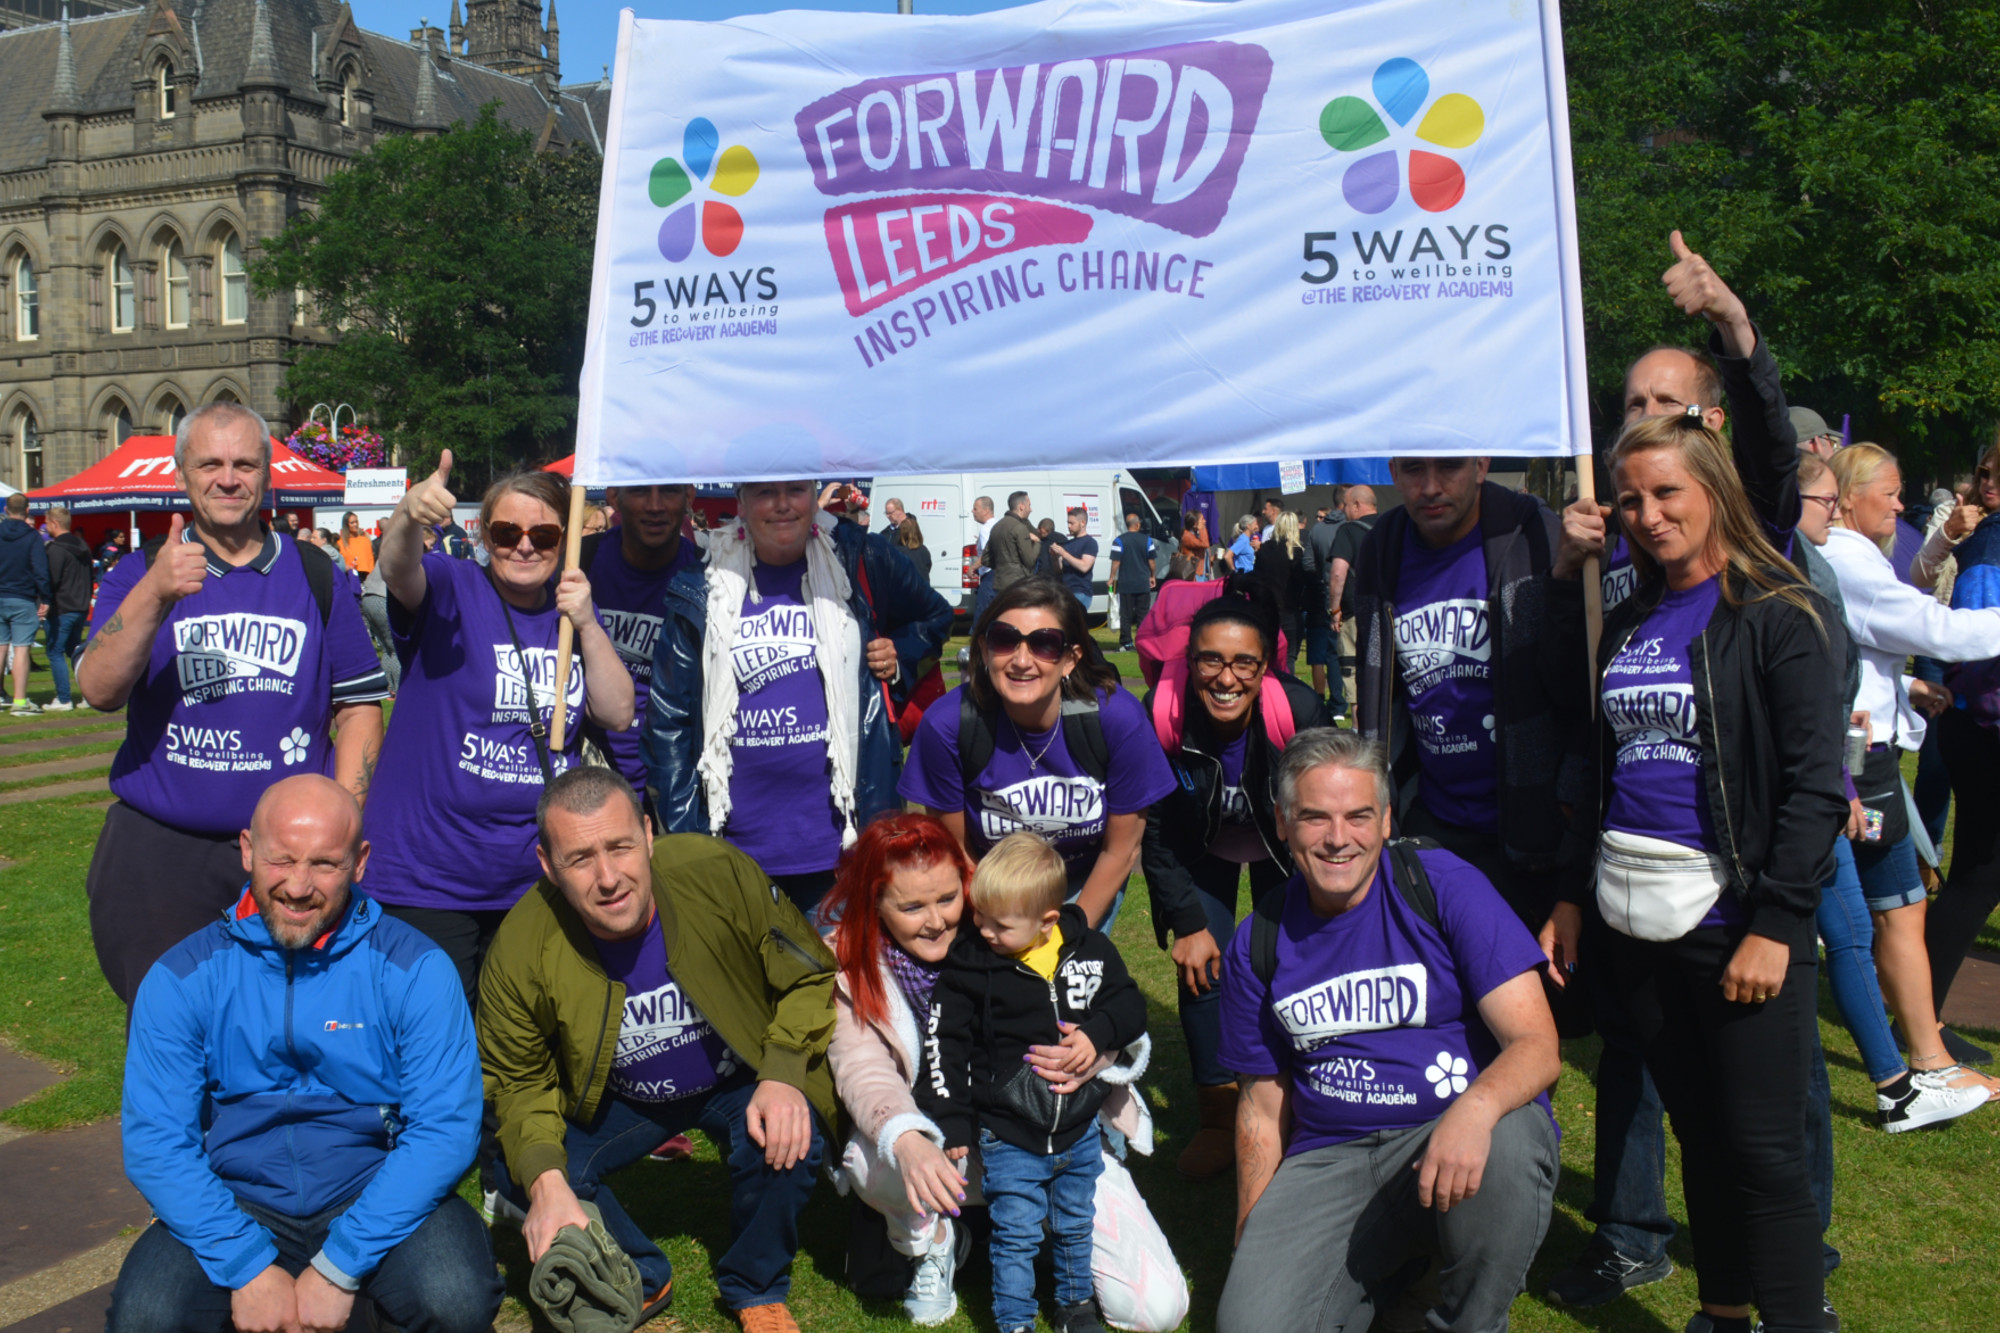 5 WAYS at the Recovery Walk